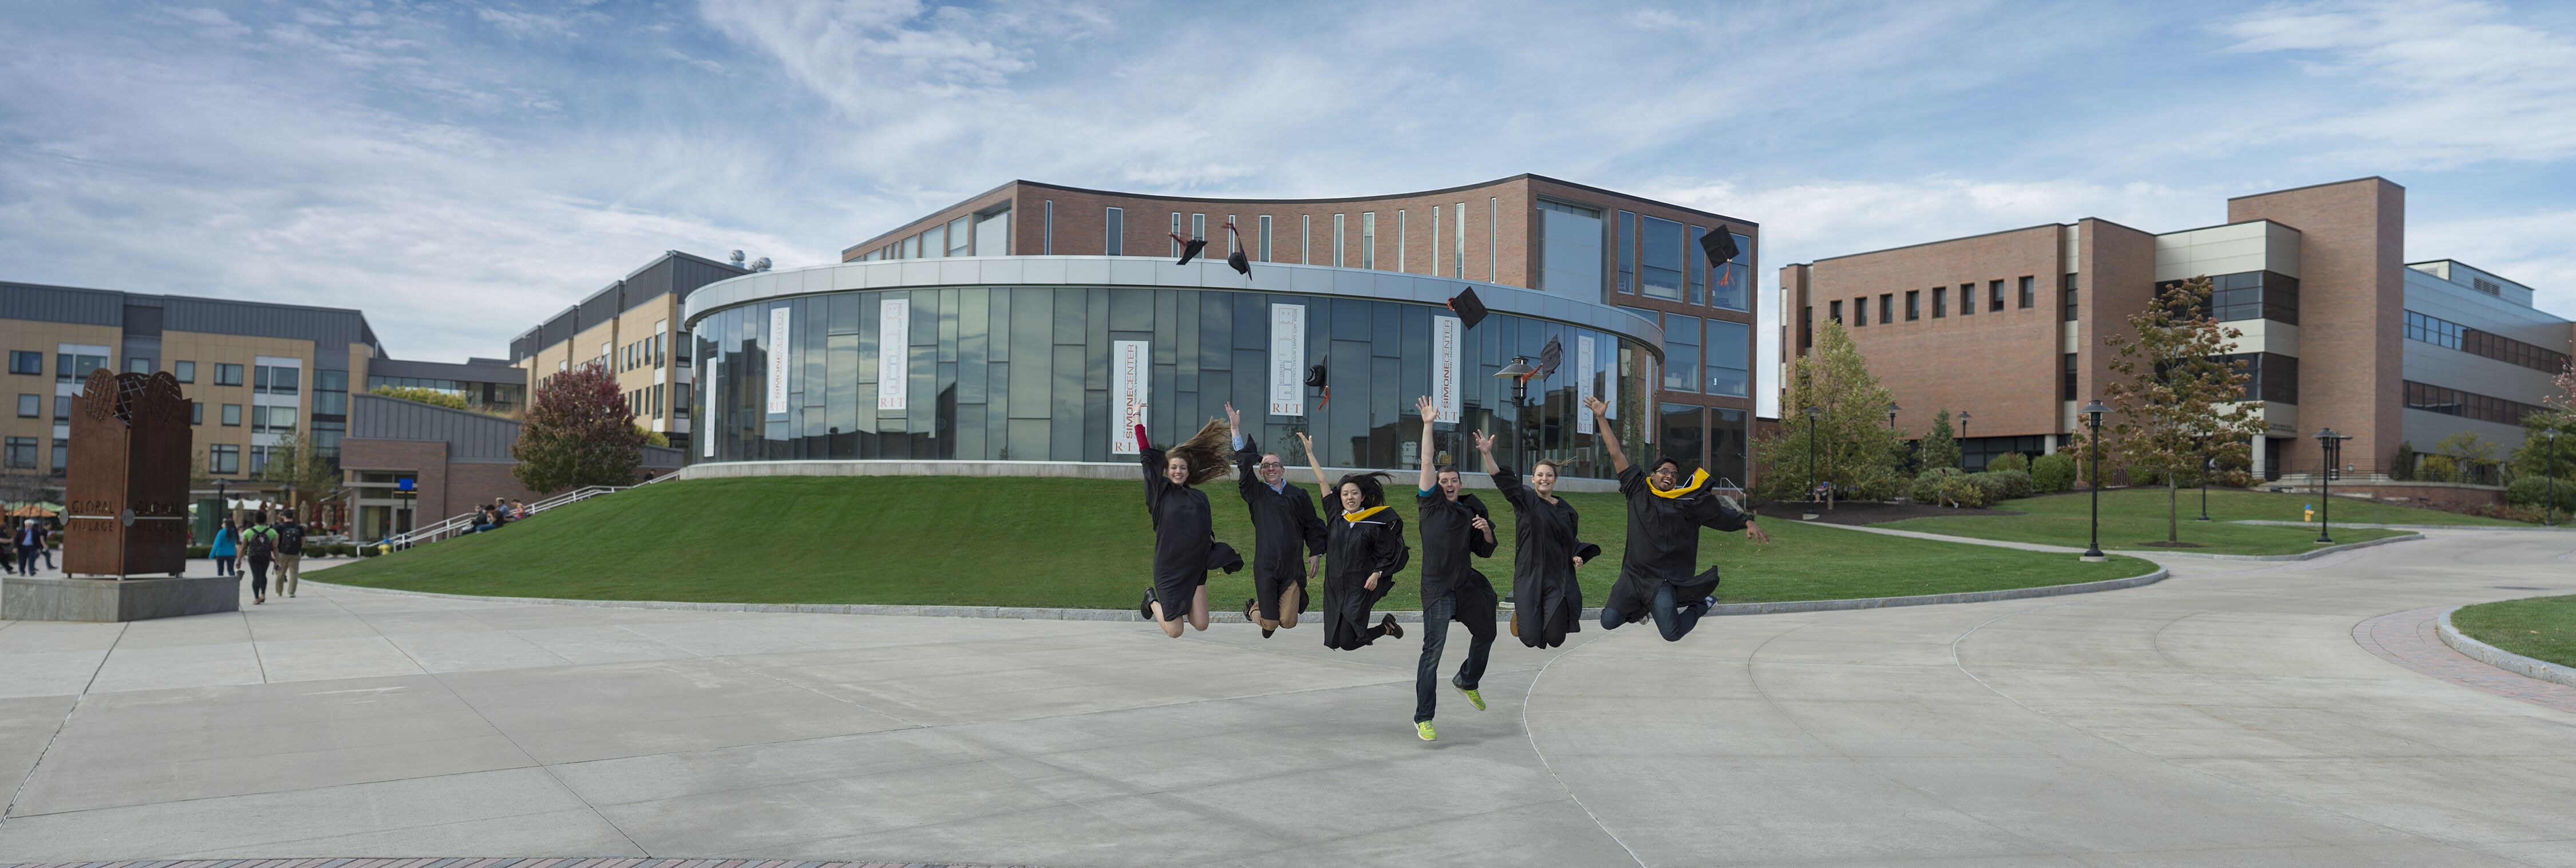 Students in caps and gowns jumping in air on campus